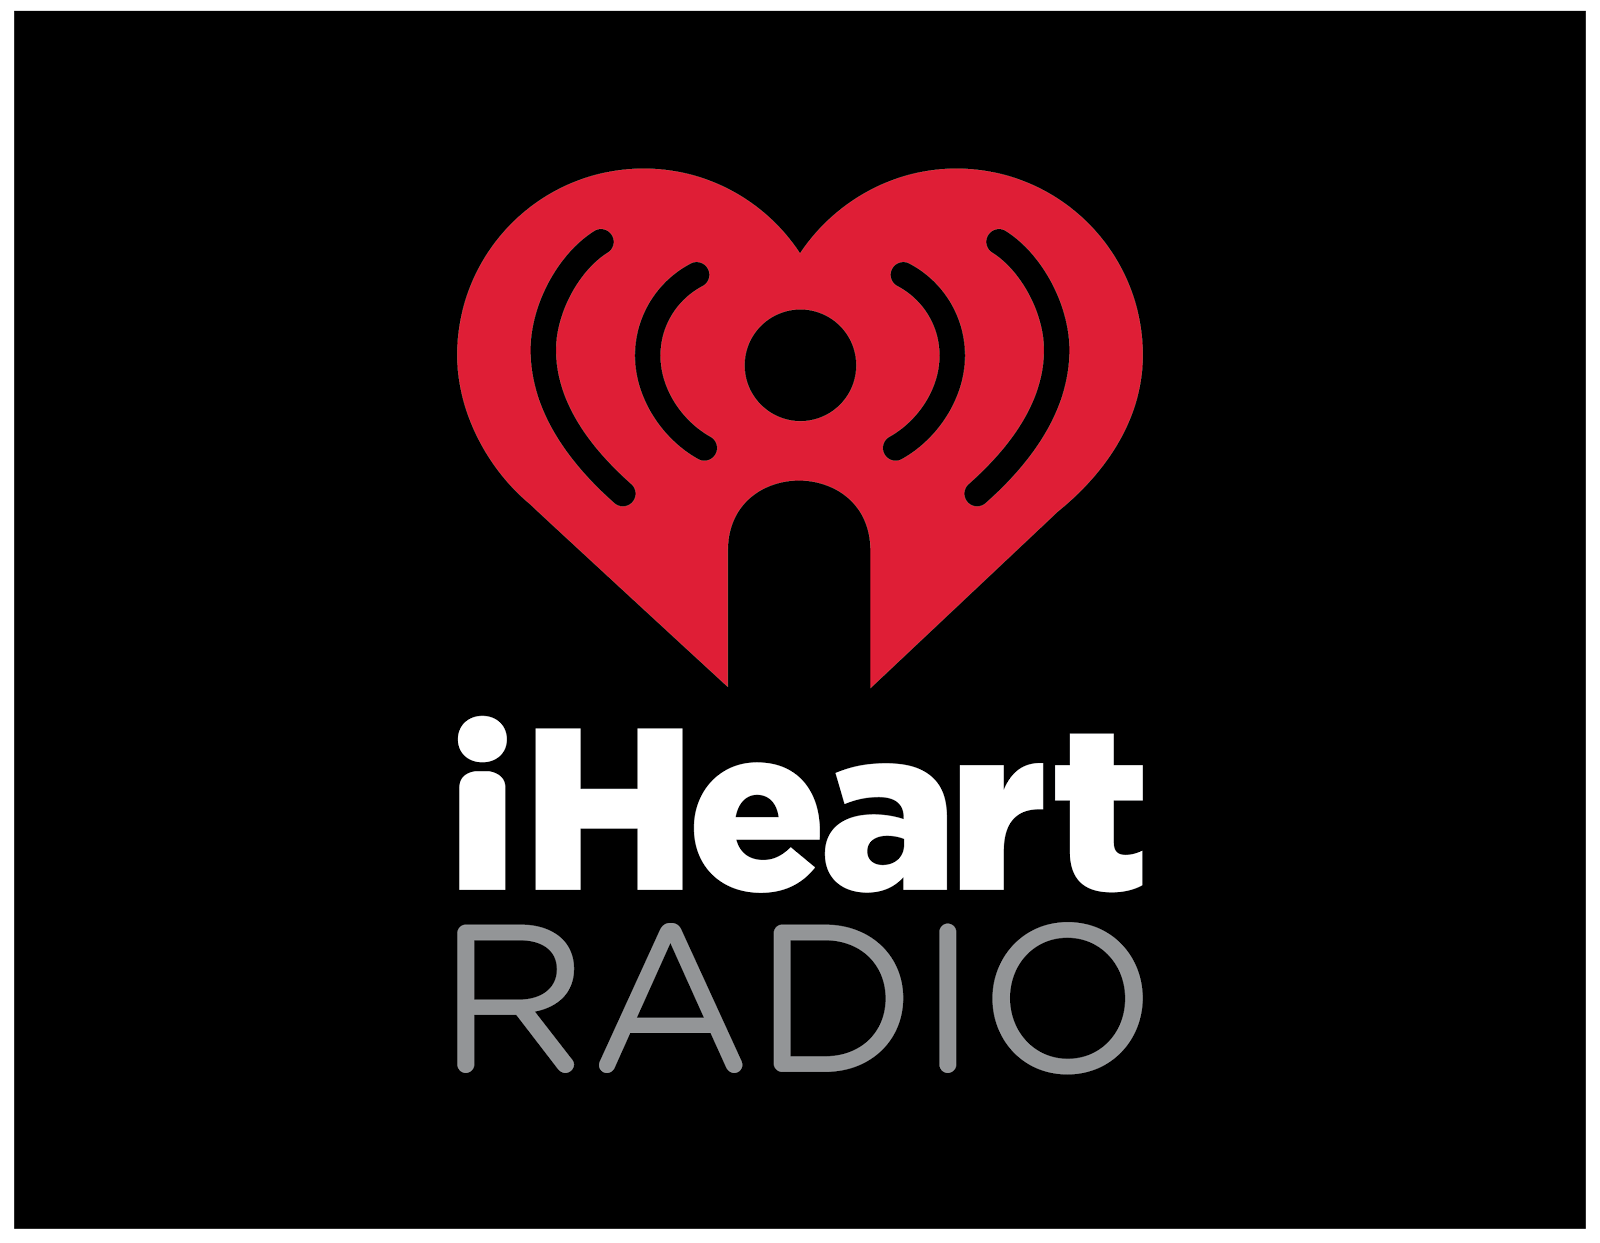 Markos Tegui Radio On iHeart.com